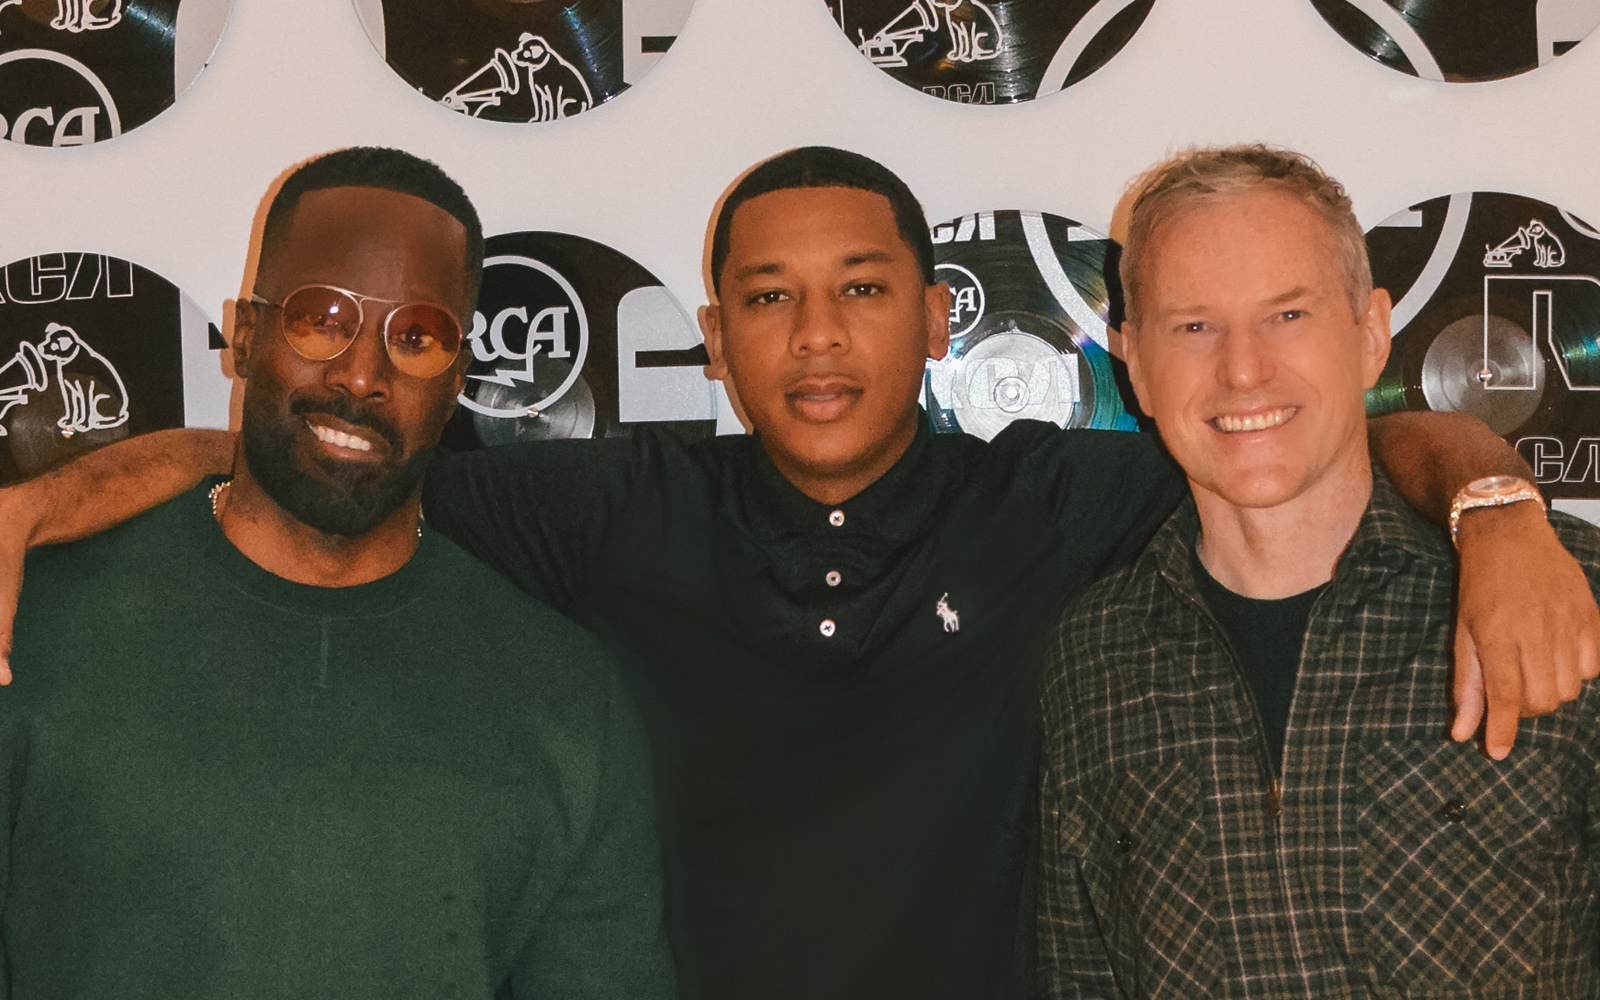 RCA PARTNERS WITH BROOKLYN JOHNNY FOR NEW JOINT VENTURE LABEL, DISTRICT 18 ENTERTAINMENT